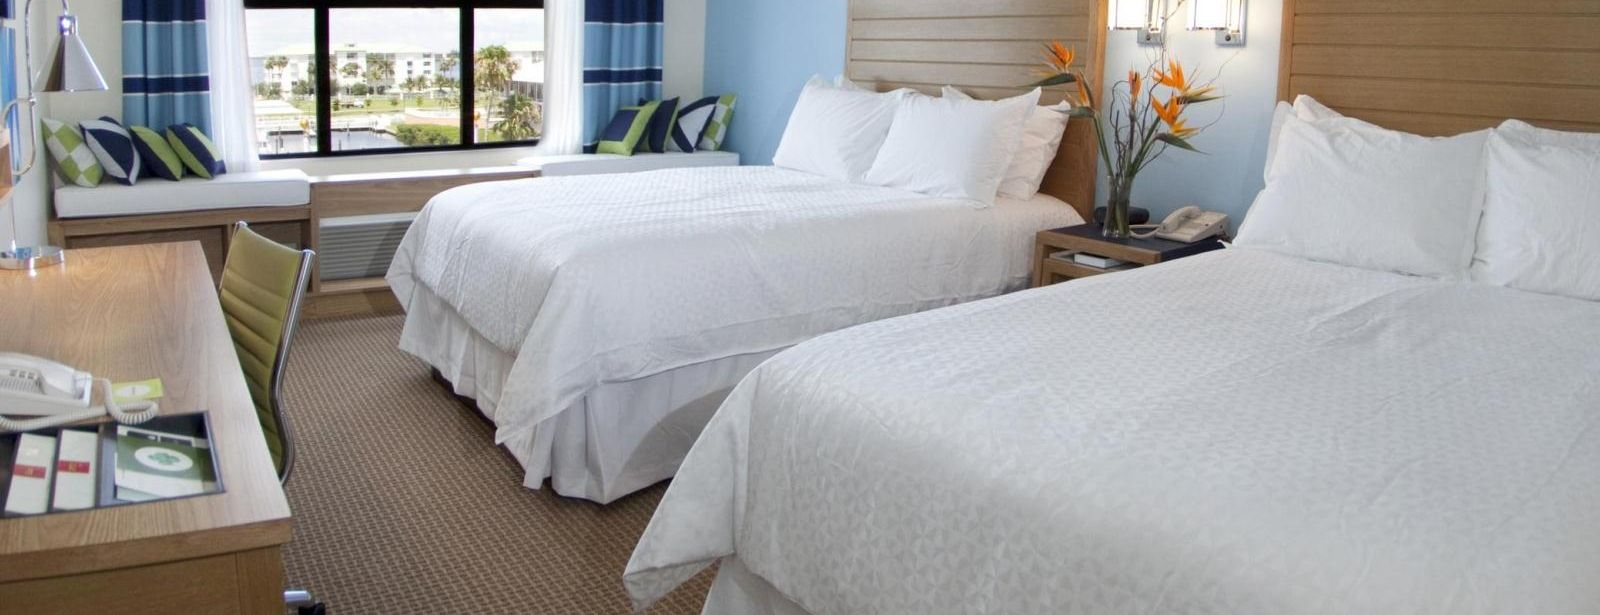 Punta Gorda Accommodations - Accessible Guest Room